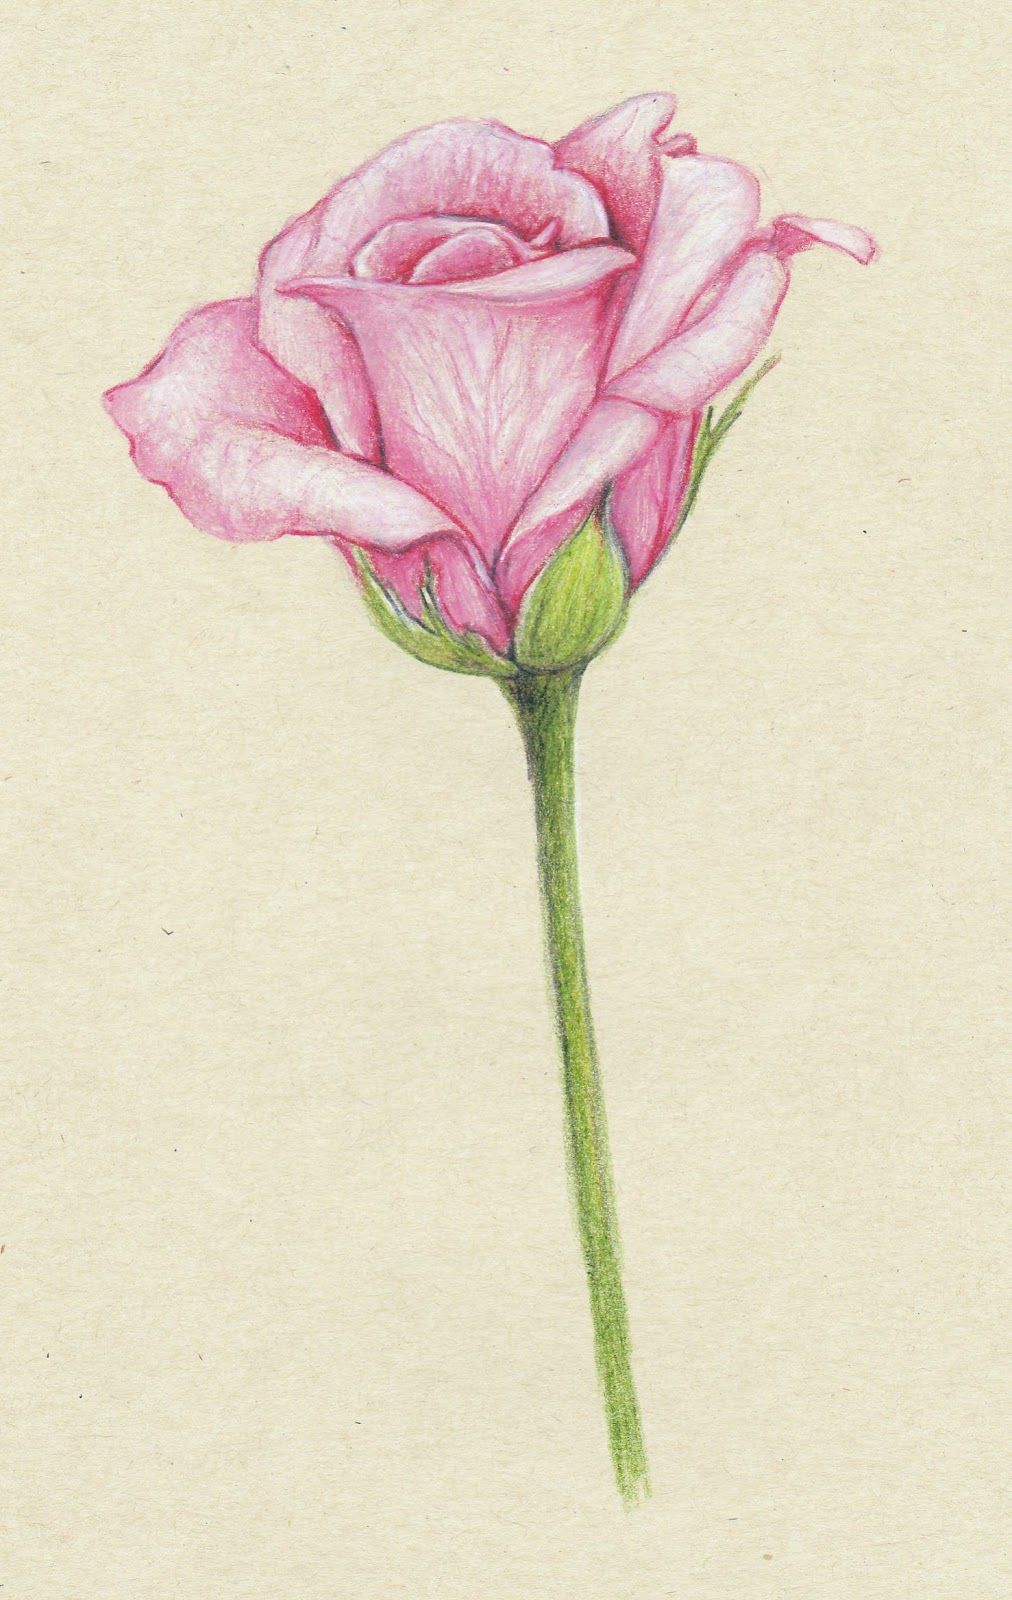 Pencil Drawings Of Flowers Pink Roses Wallartroad Pencildrawings Flowers In Color Pencil Pencil Drawings Of Flowers Beautiful Flower Drawings Pen